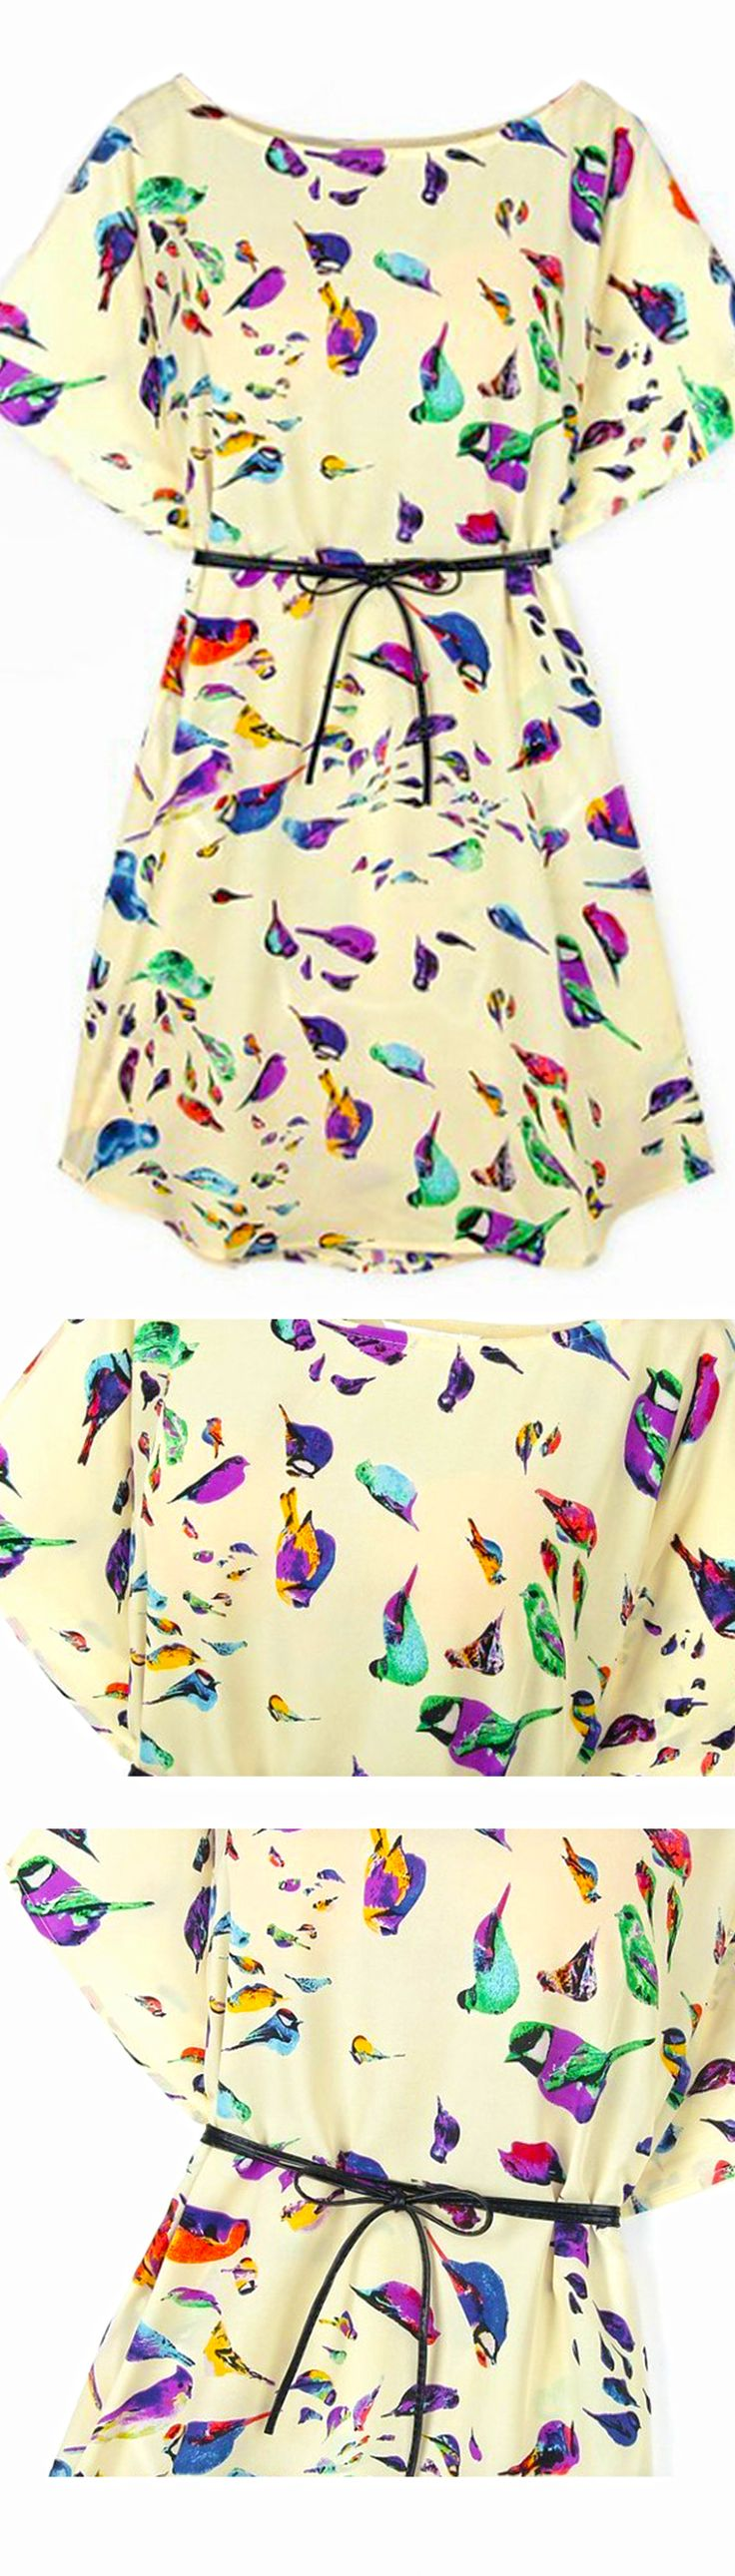 Take a look at this bird print shirt dress,love the style,you won't be disappointed! Find it at SheIn.com